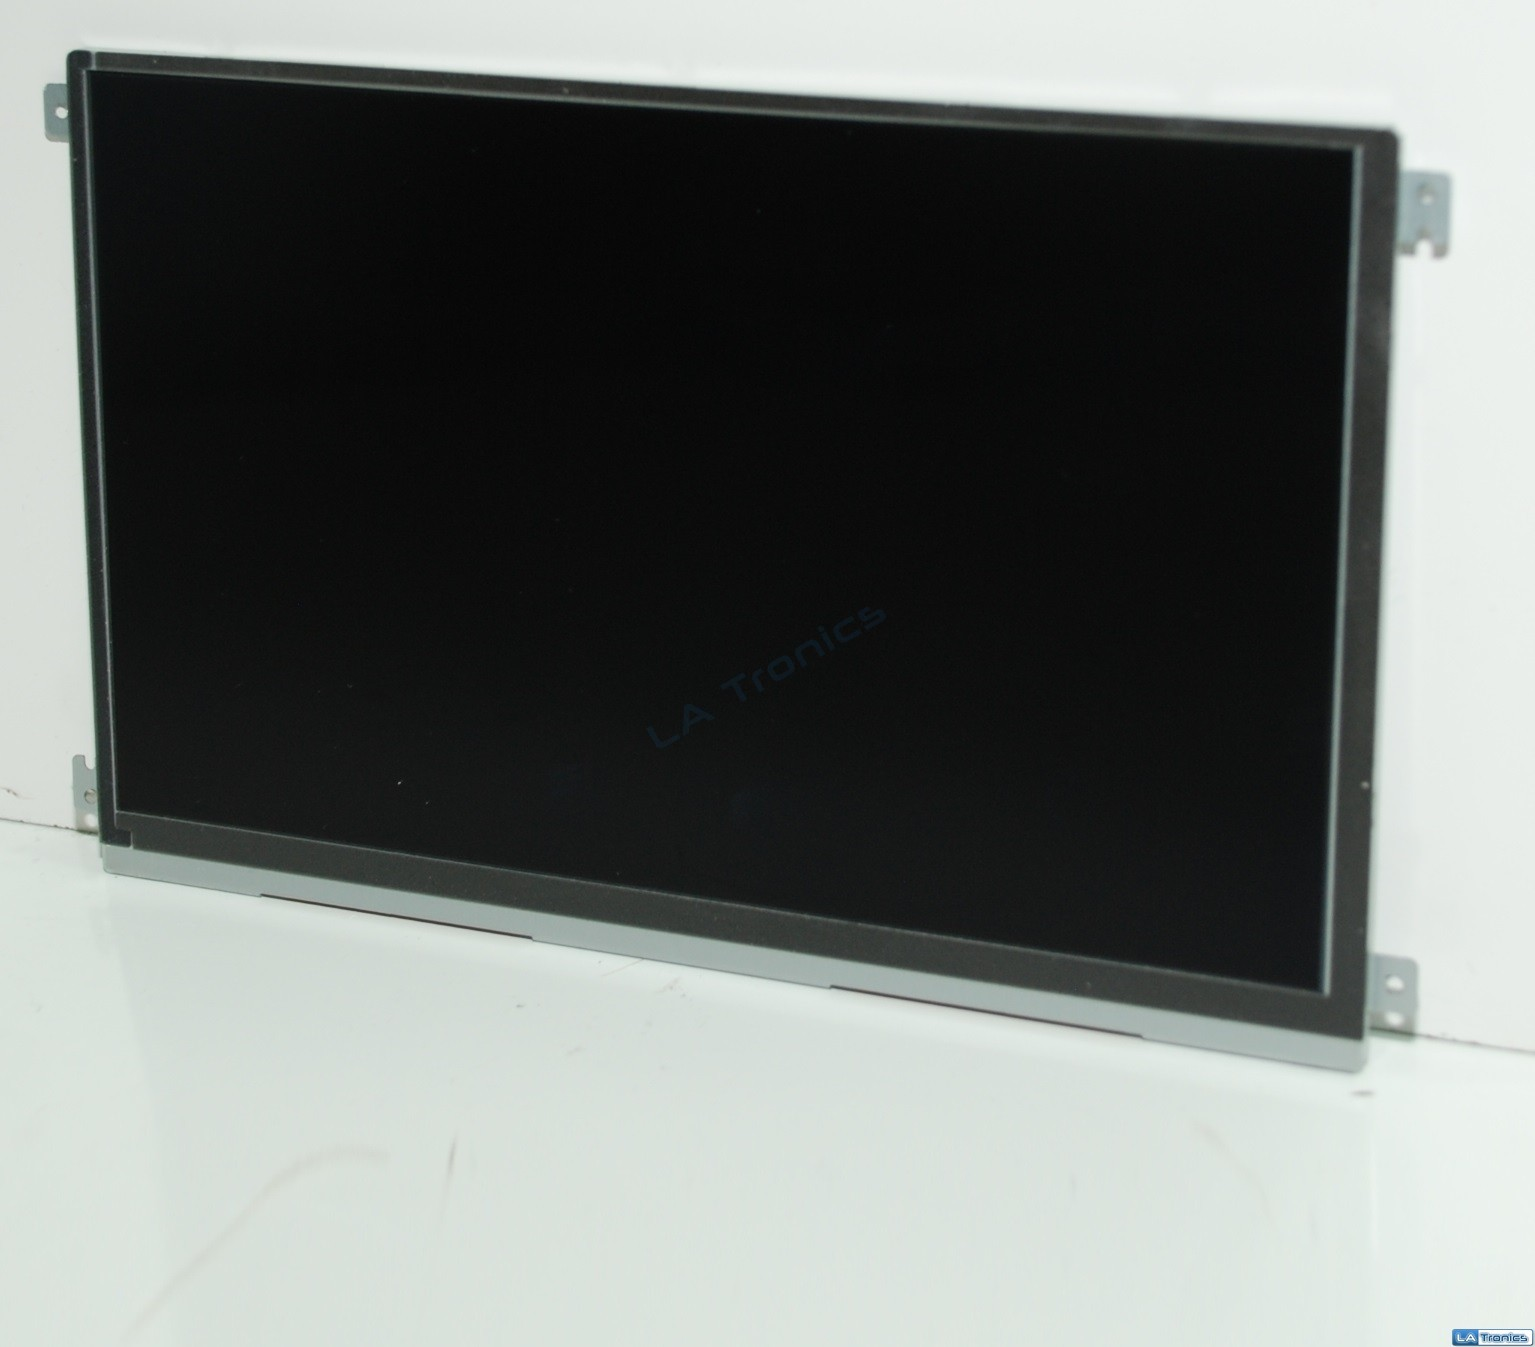 "Genuine Rim Blackberry Playbook OS 4460 7"" Glossy LCD Screen 18D41M122"